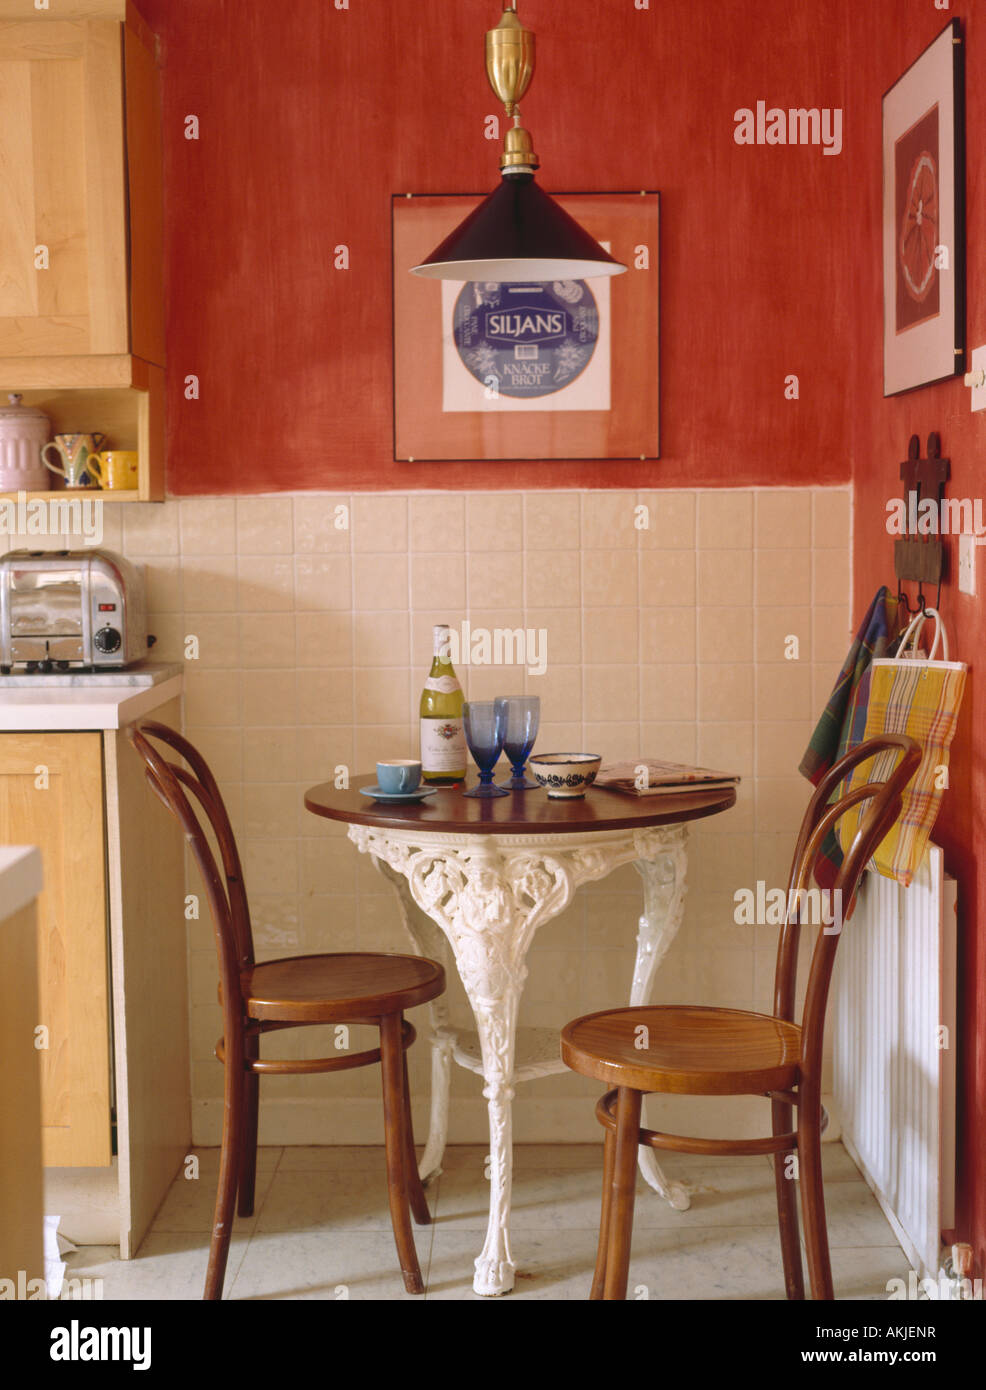 Bentwood chairs and table - Thonet Bentwood Chairs And Old French Cafe Table In Dining Corner Of Red Kitchen With White